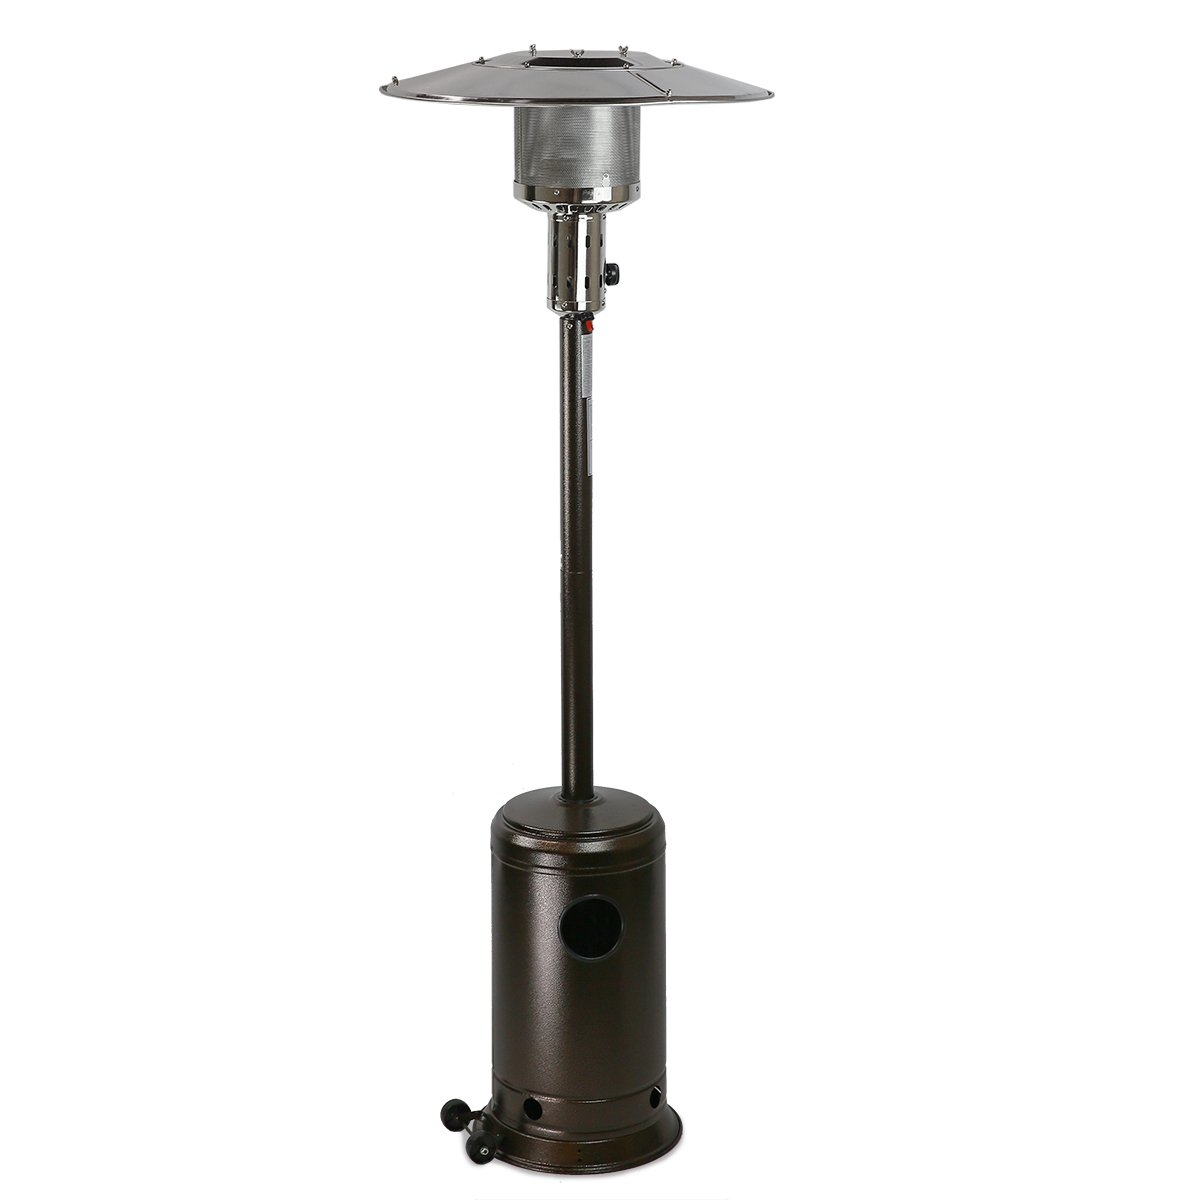 XtremepowerUS 48,000 BTU Premium Floor Standing Propane Outdoor Patio Heater  (Mocha) - Best Outdoor Heat Lamps For Patio Amazon.com